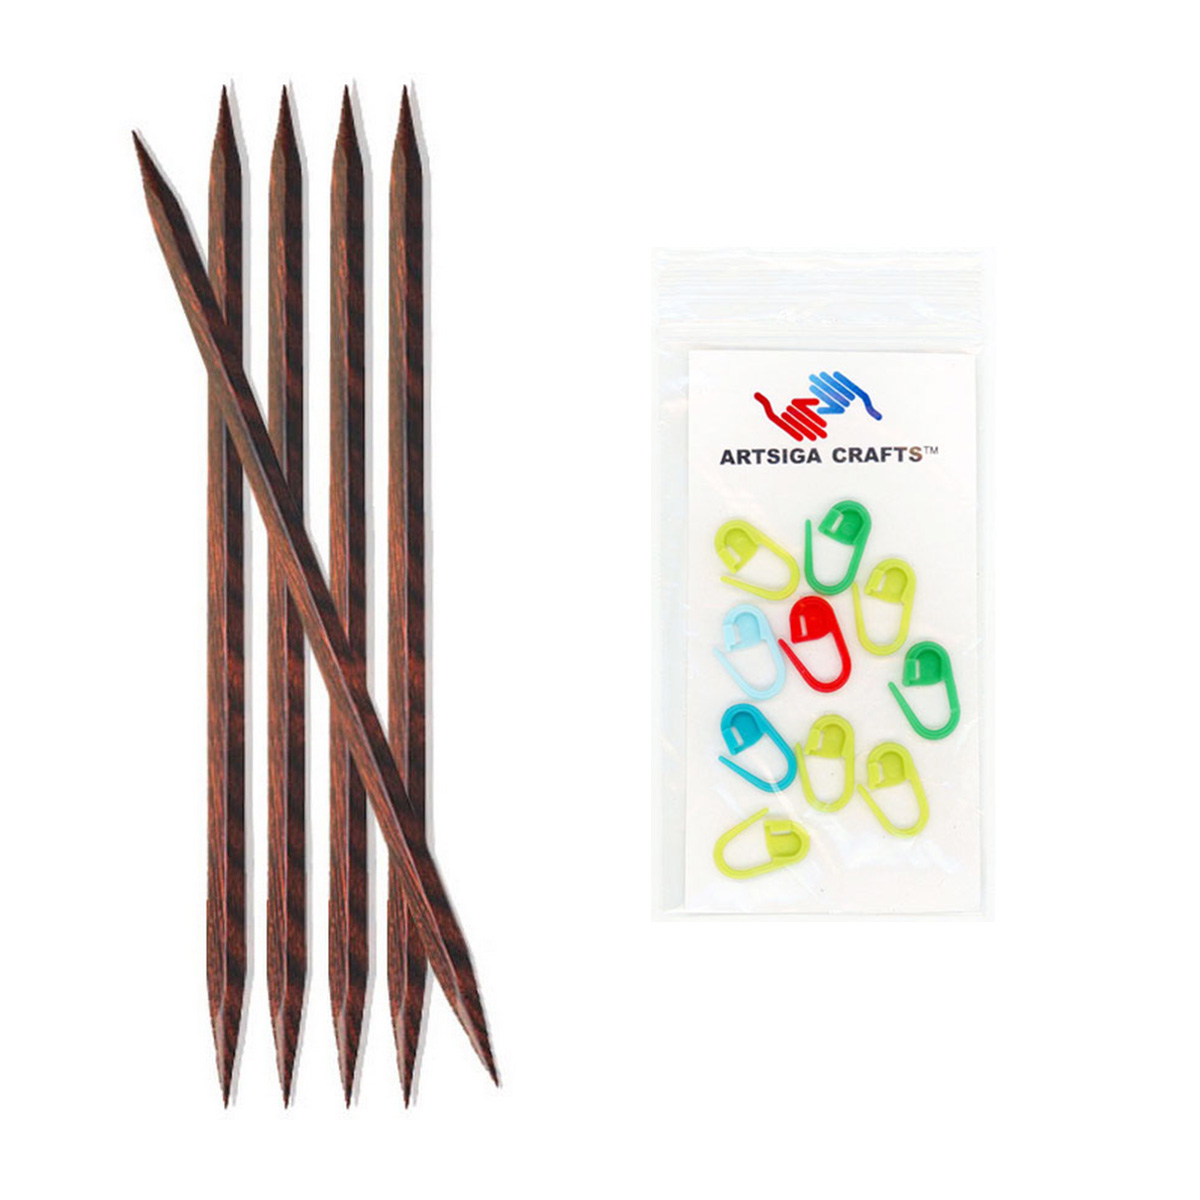 5x Knitpro Cubics Double Pointed Knitting Needles 15cm